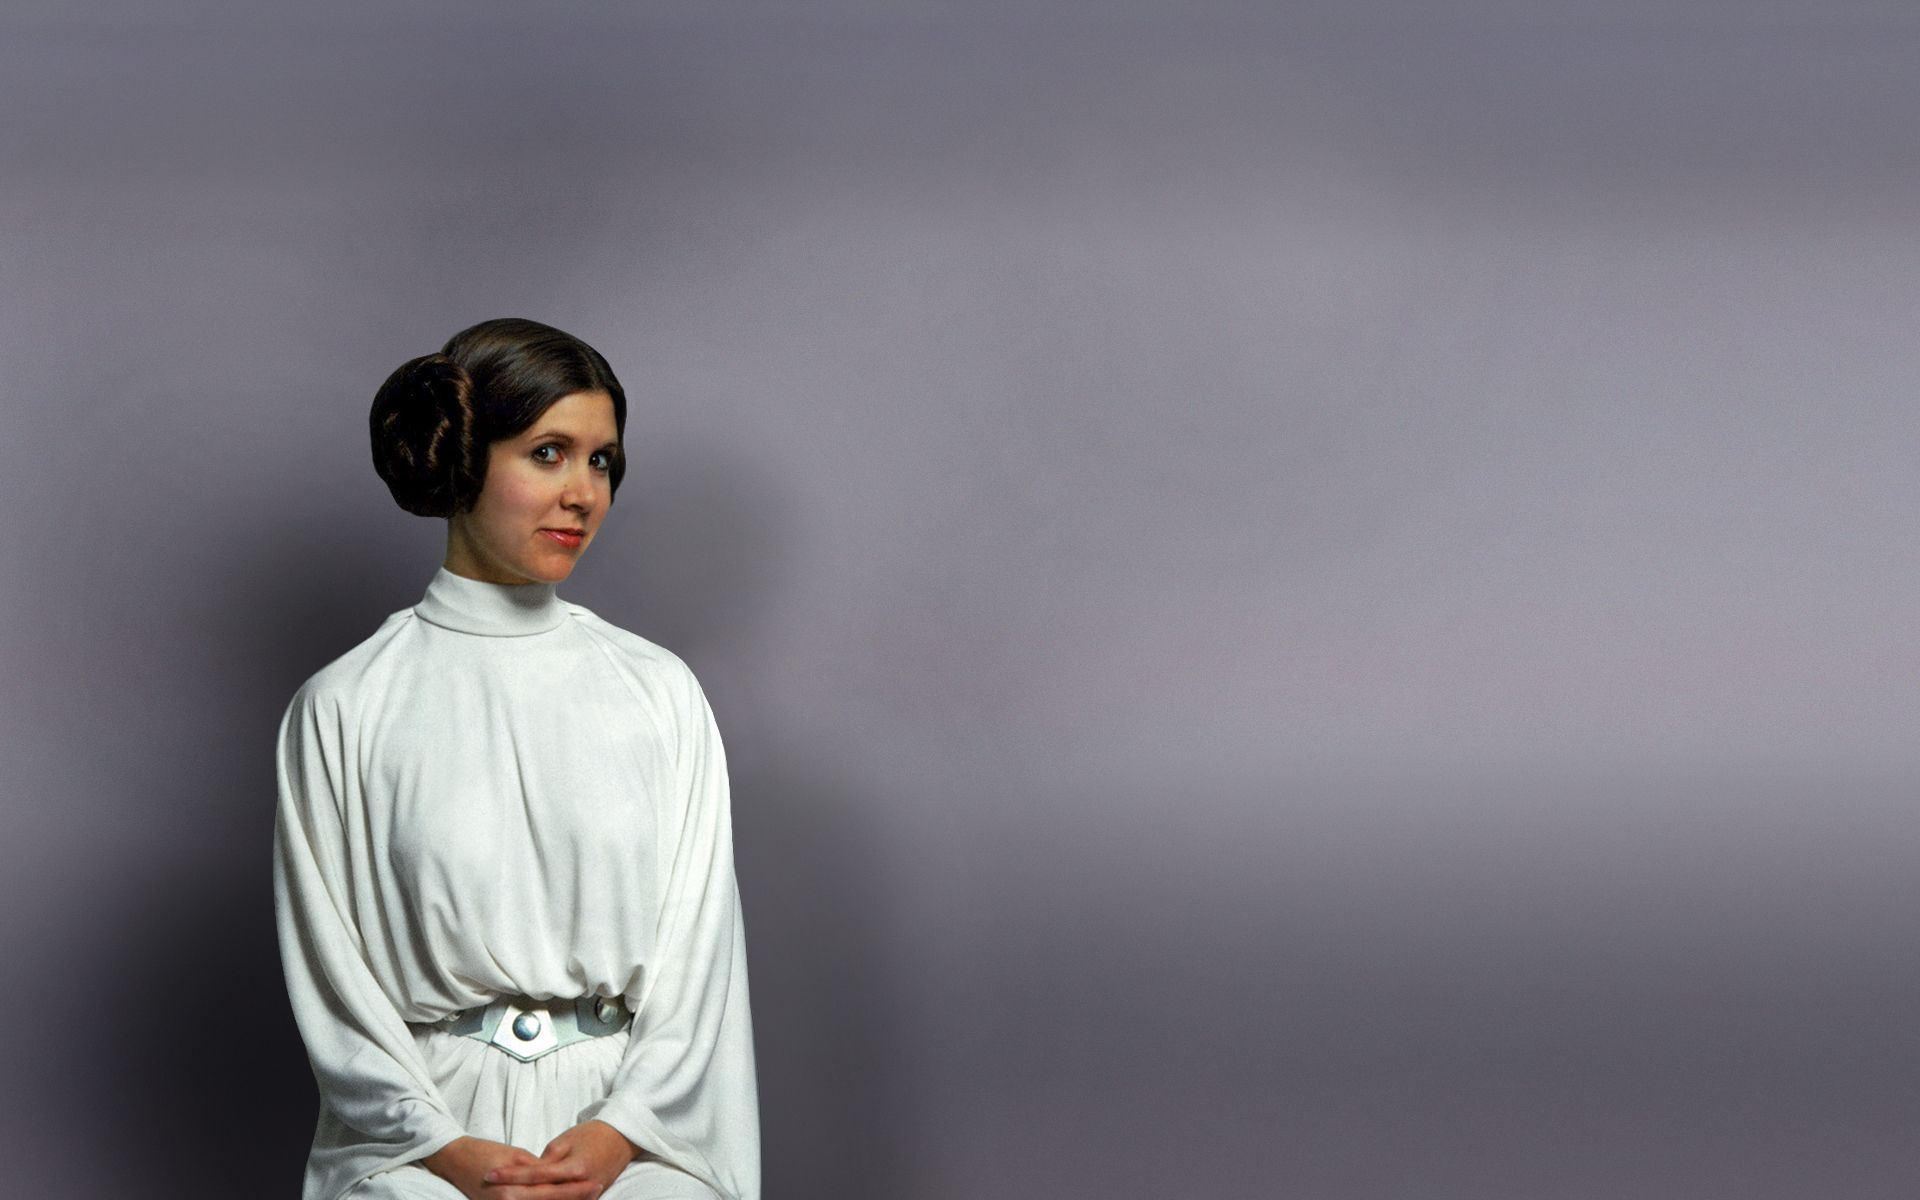 Princess Leia Promo Shot For Episode Iv A New Hope 1977 Star Wars Wallpaper Carrie Fisher Princess Leia Star Wars